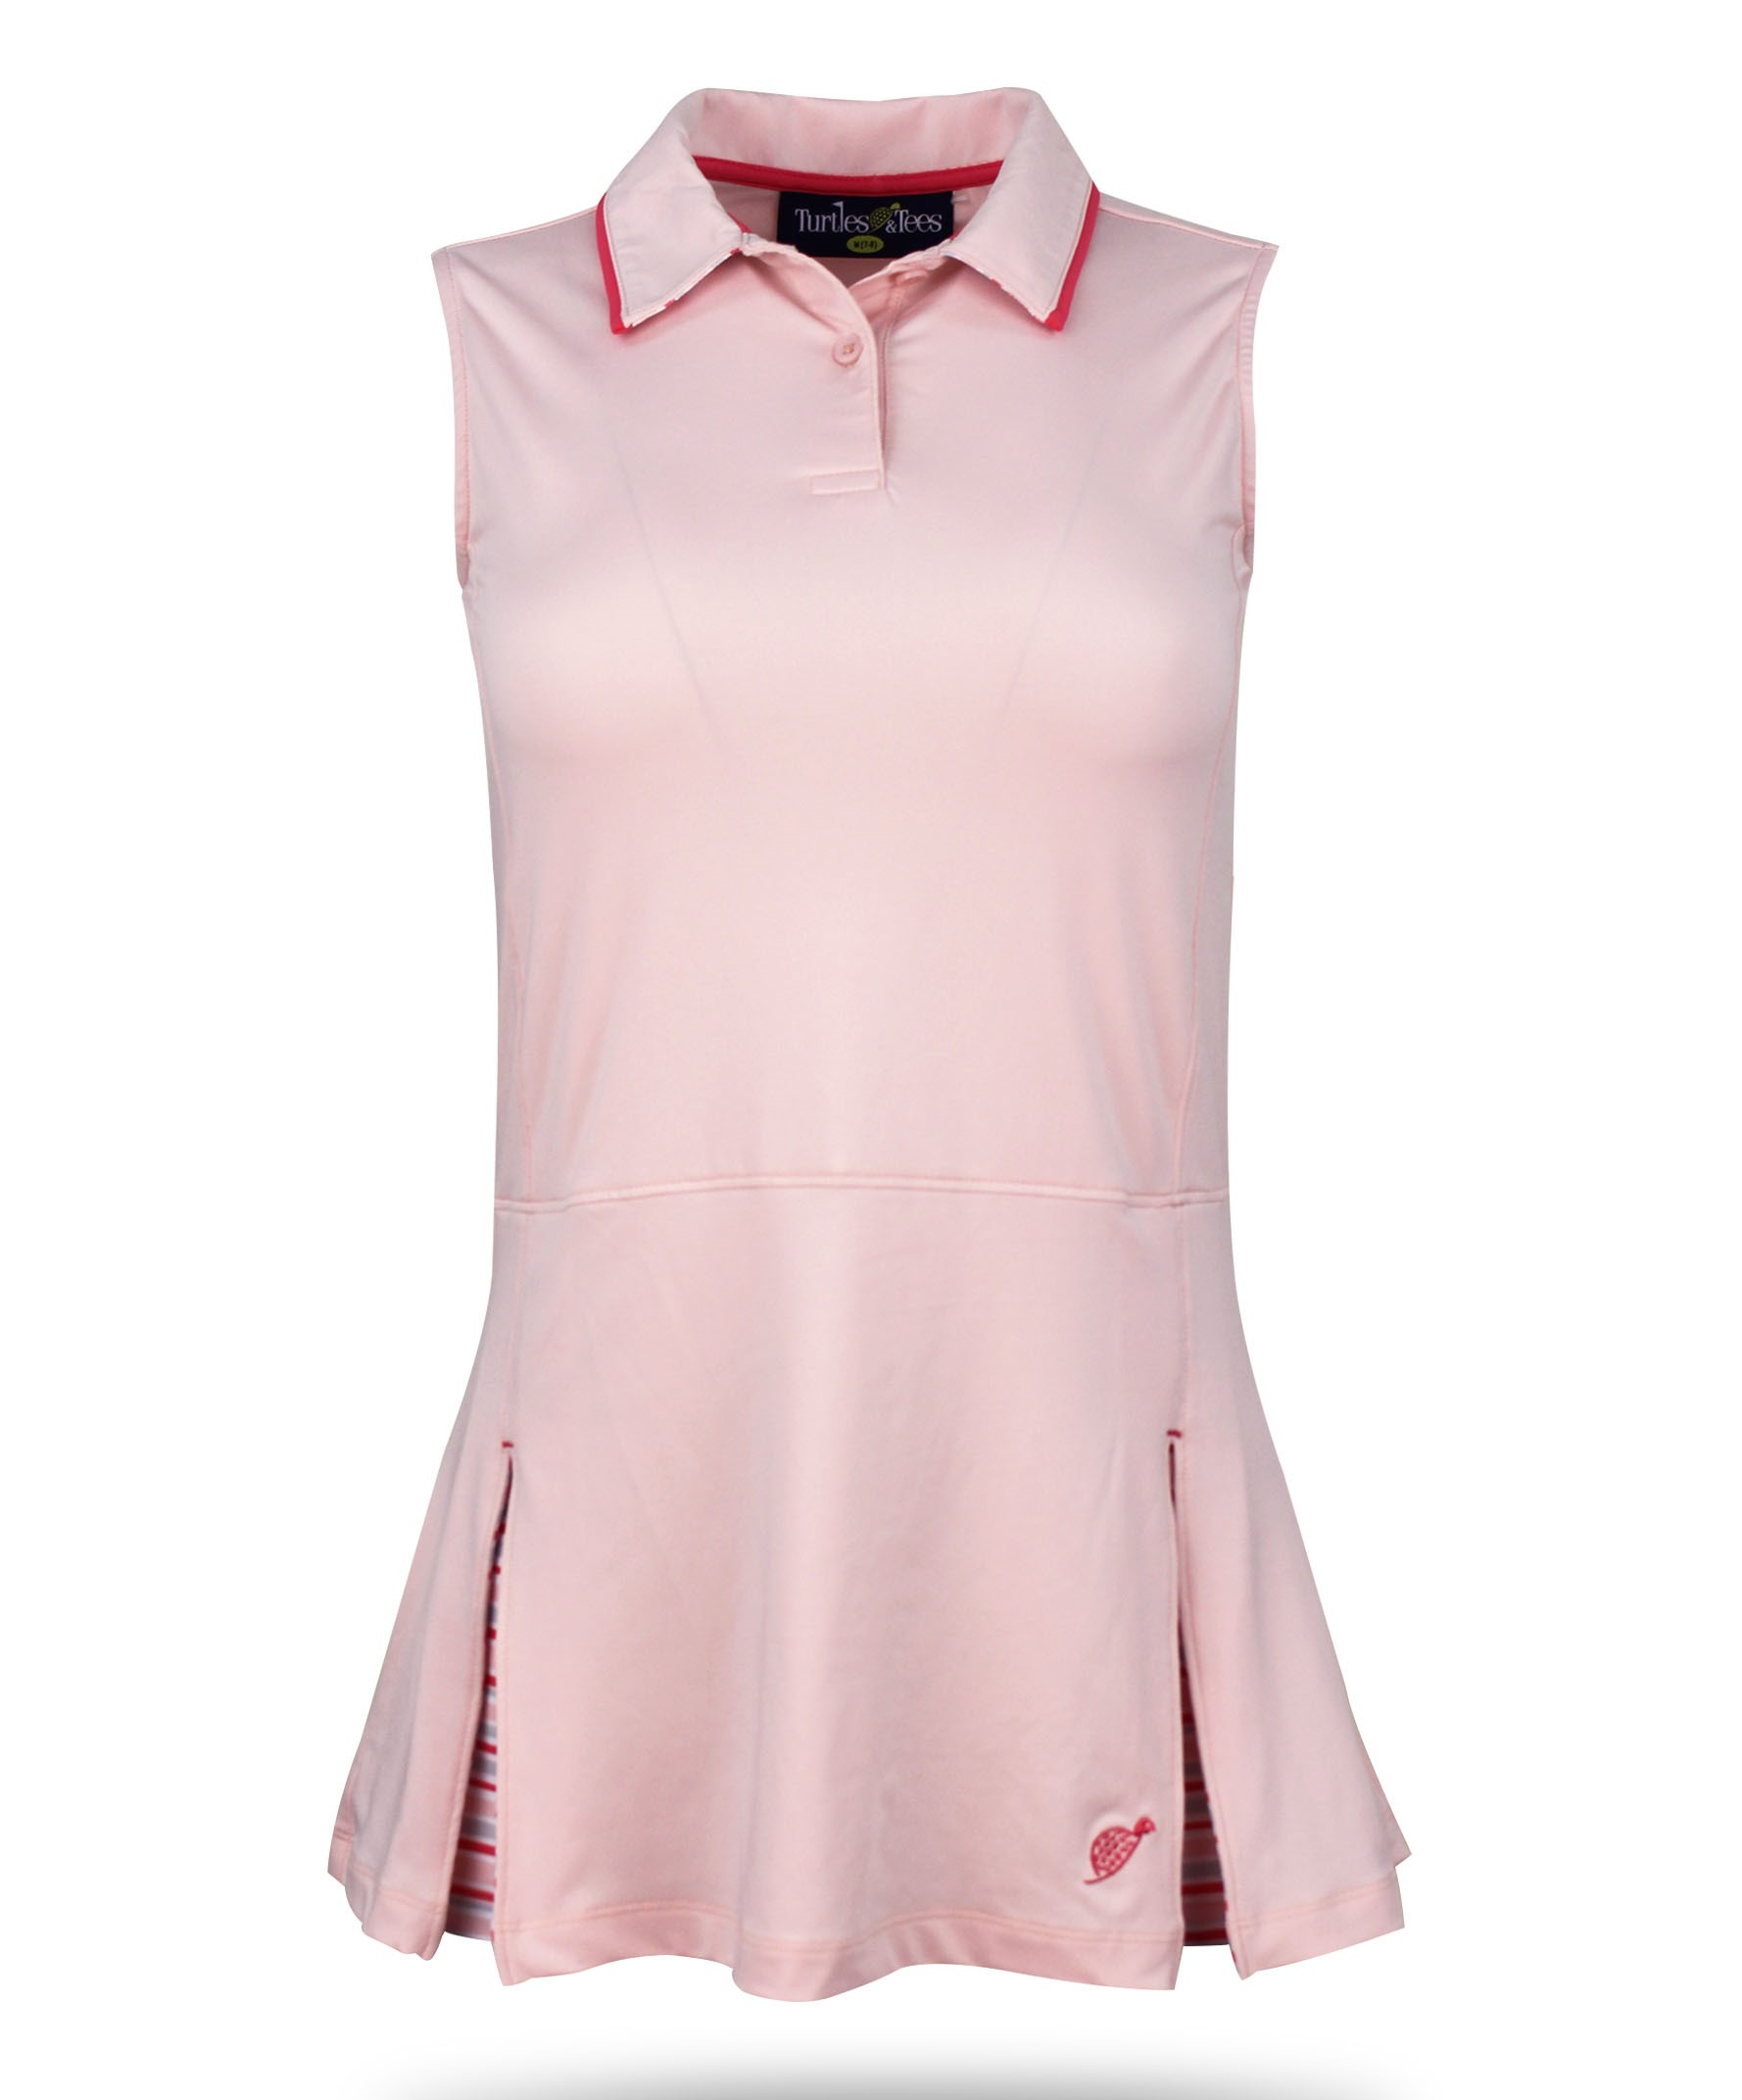 2325c6fea2e Kate Girl s Golf and Tennis Dress in Pale Pink Print w Coordinating spandex  shorts